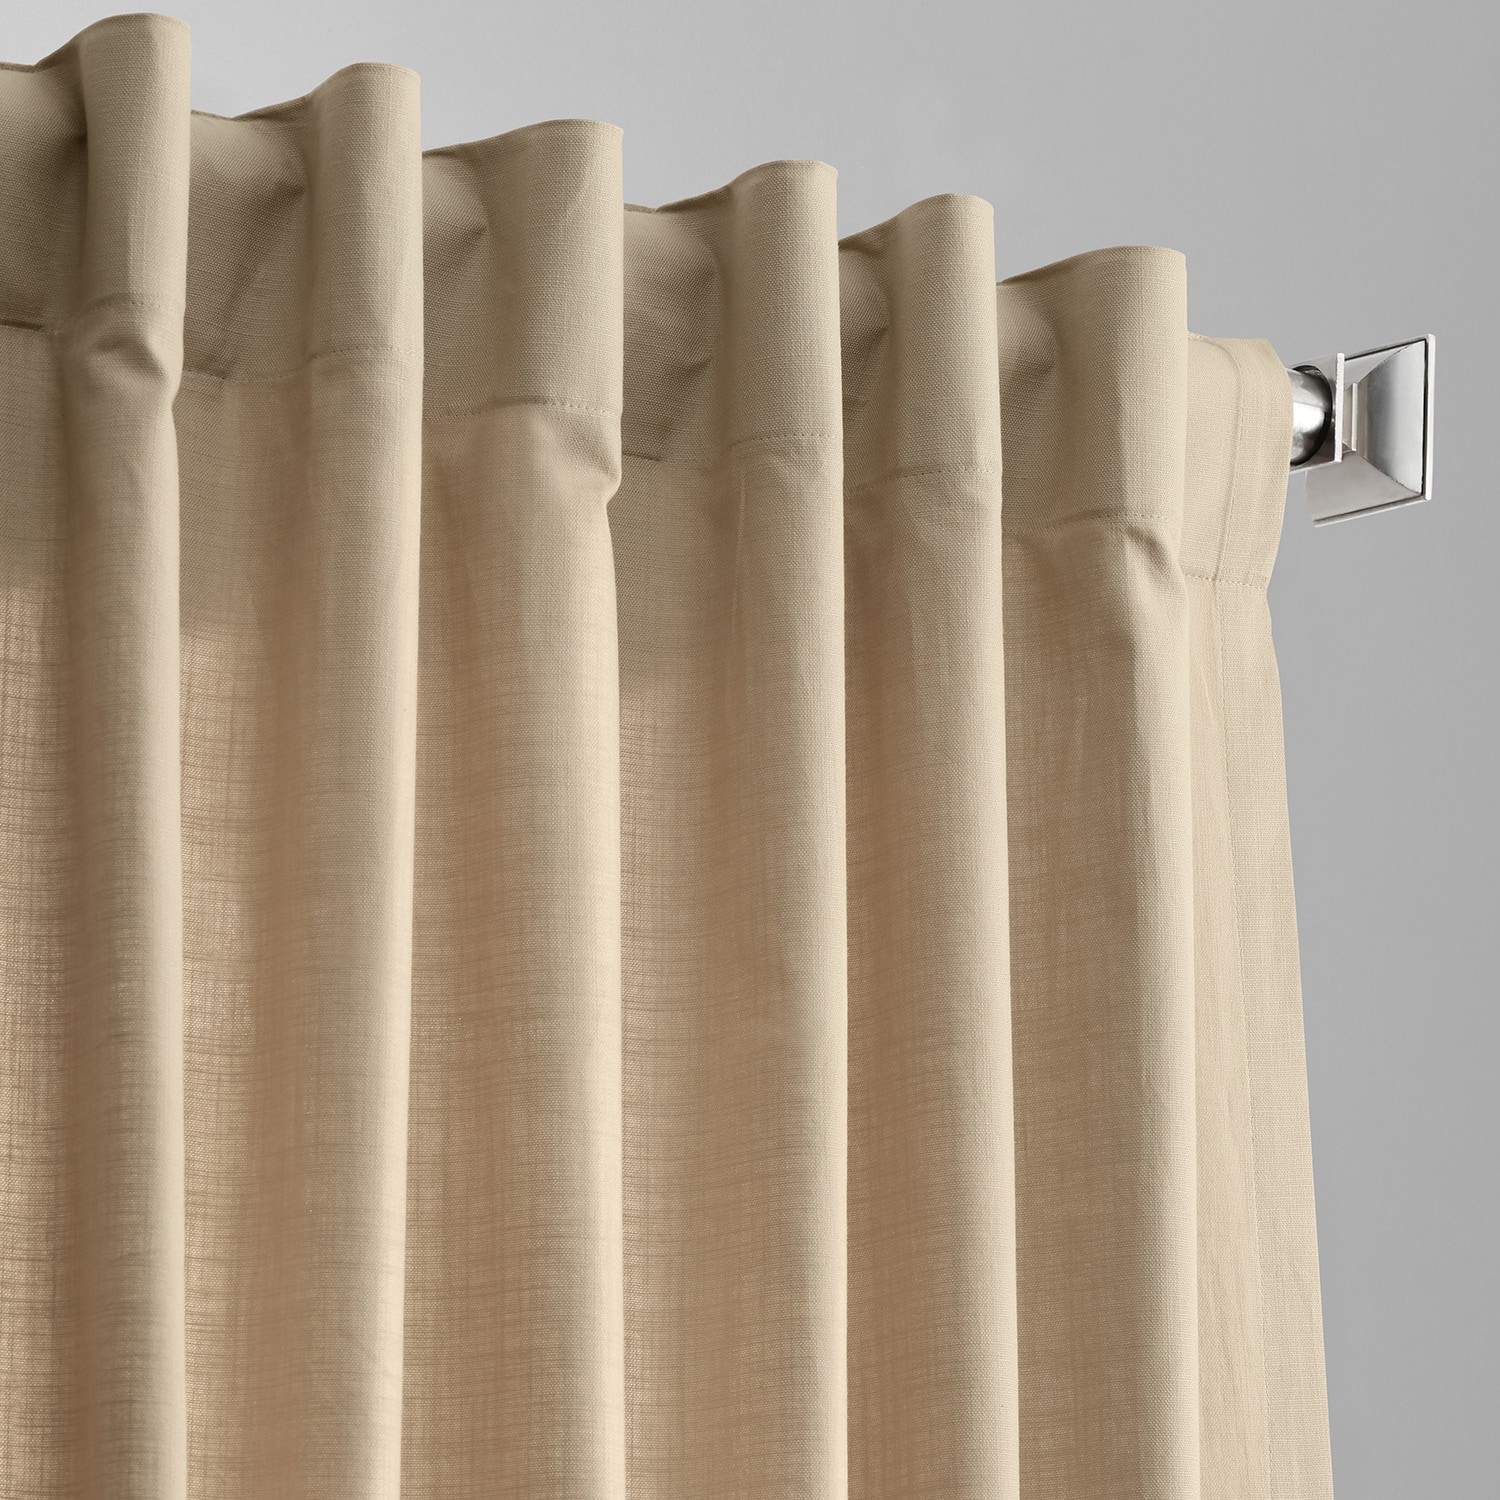 Details About Country Cotton Linen Weave Curtains (sold Per Panel) Throughout Solid Country Cotton Linen Weave Curtain Panels (View 14 of 30)